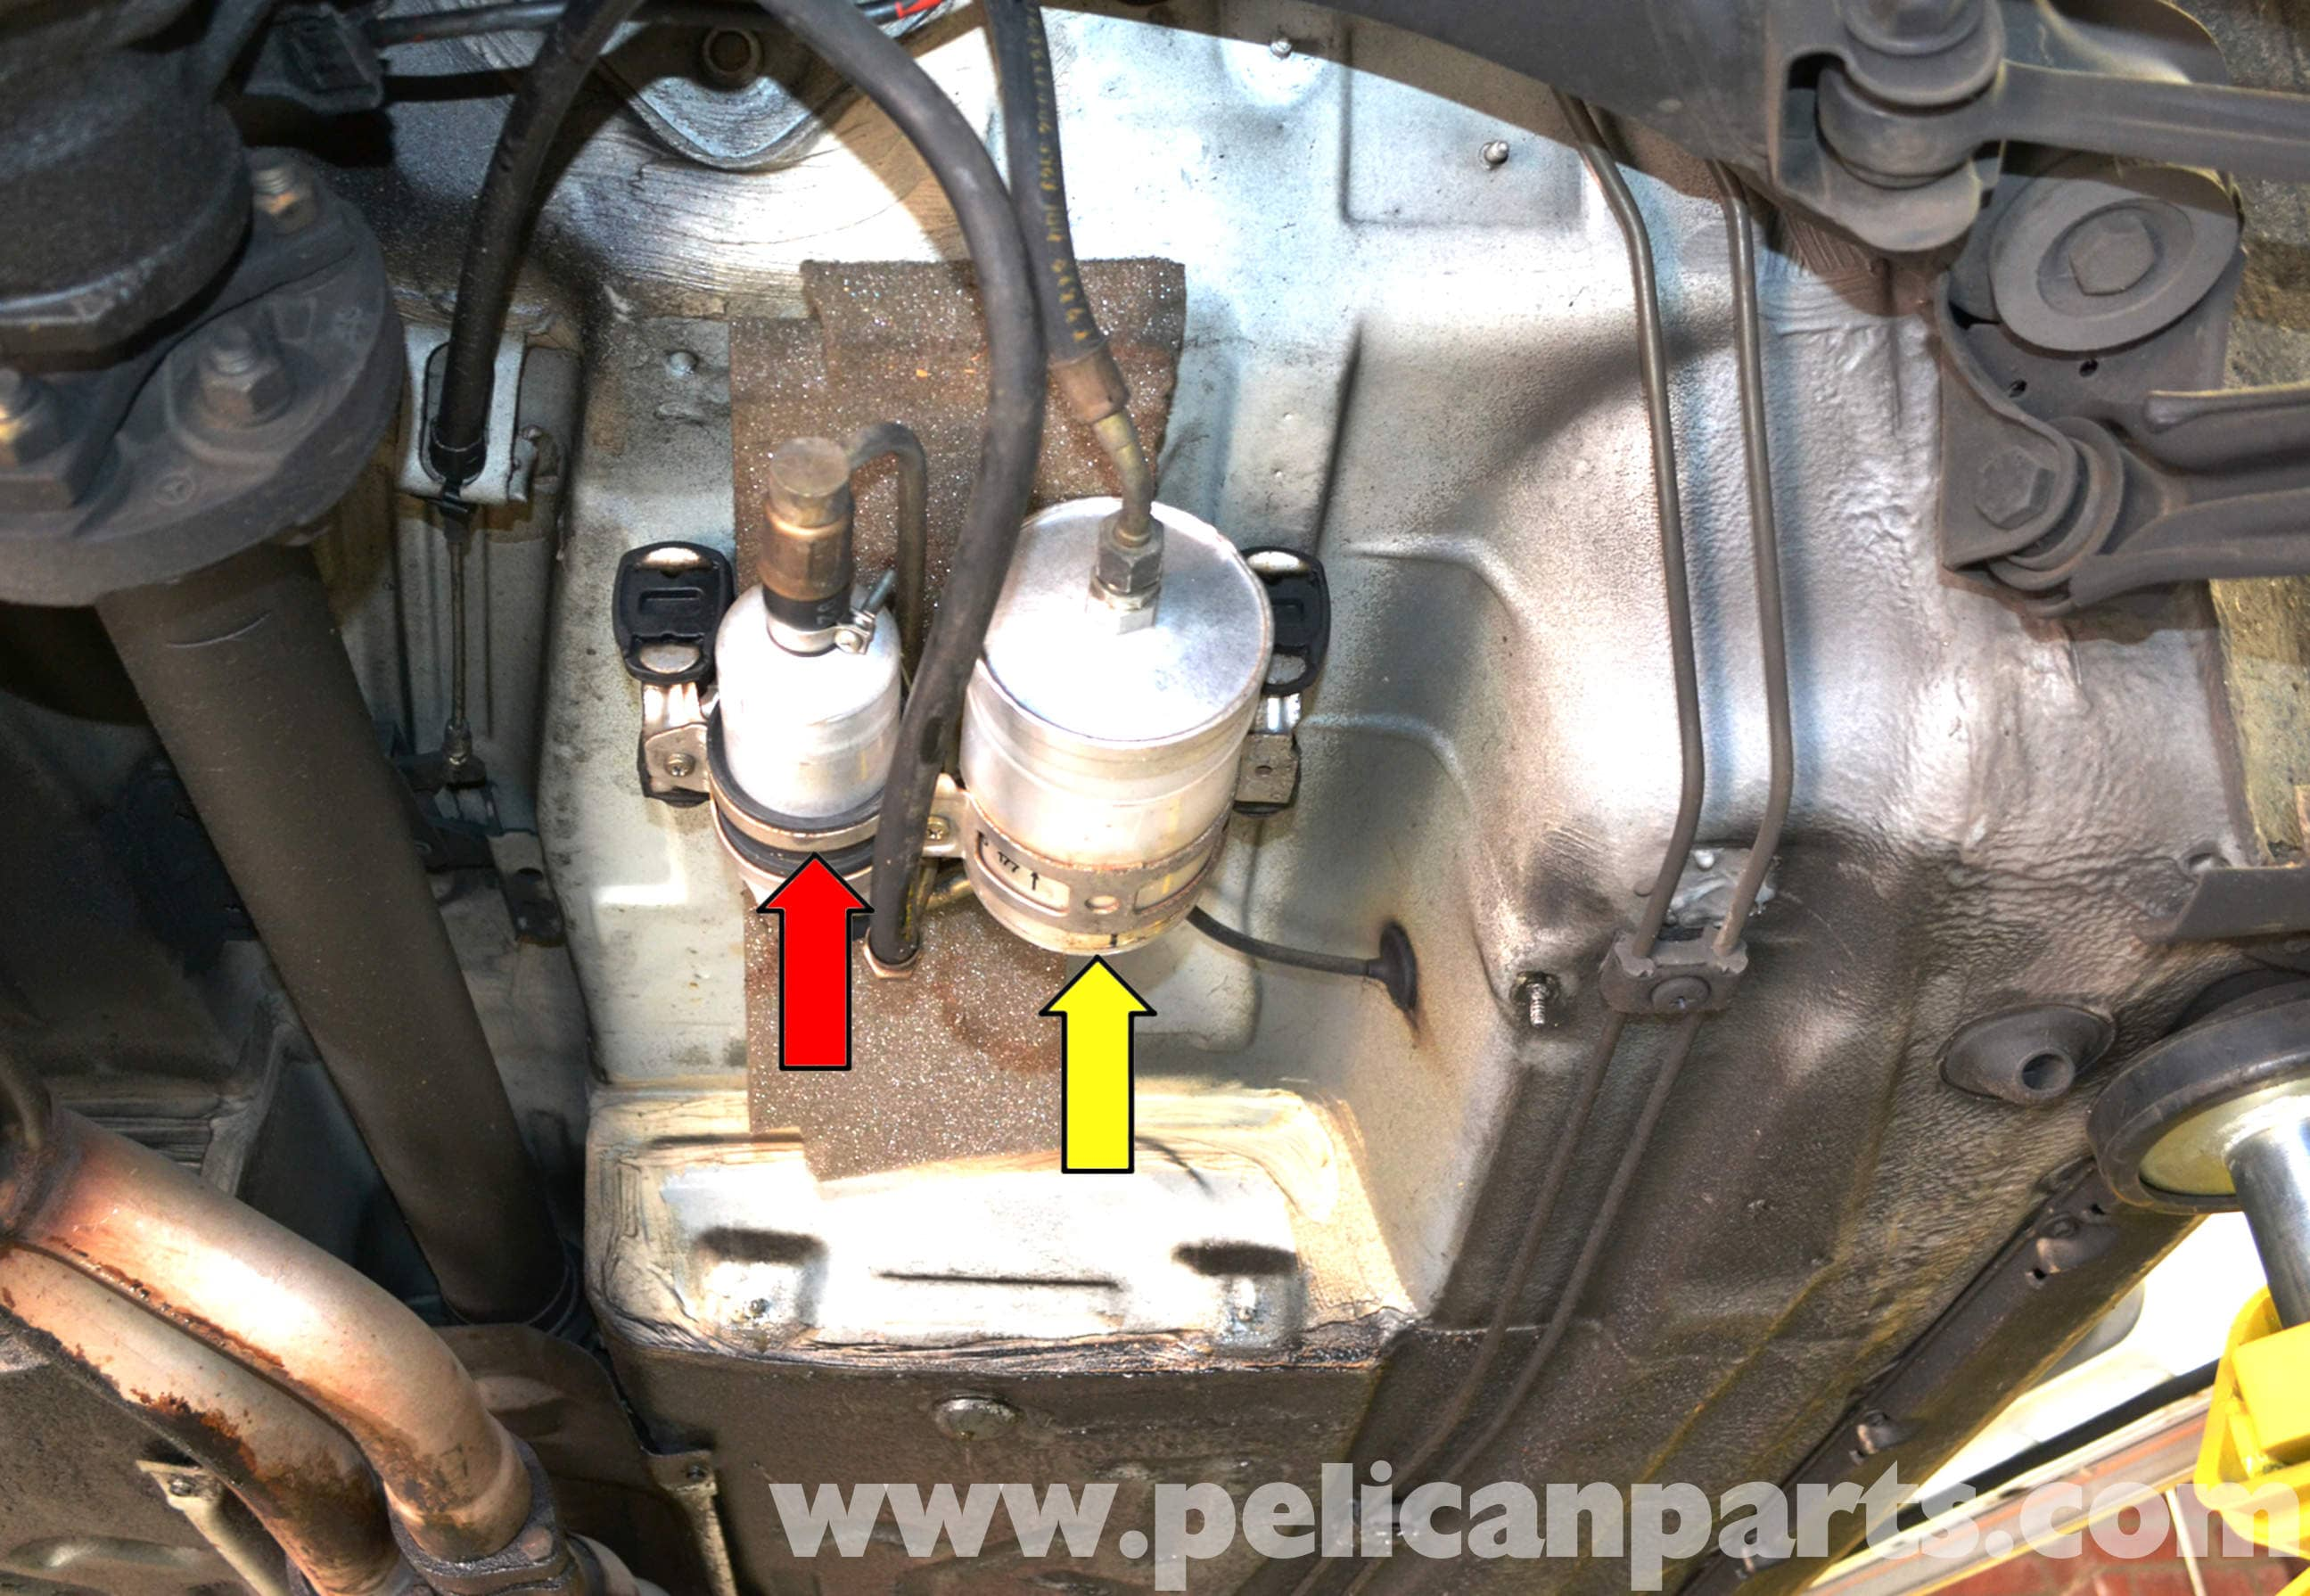 Replacing the fuel filter ThoughtCo